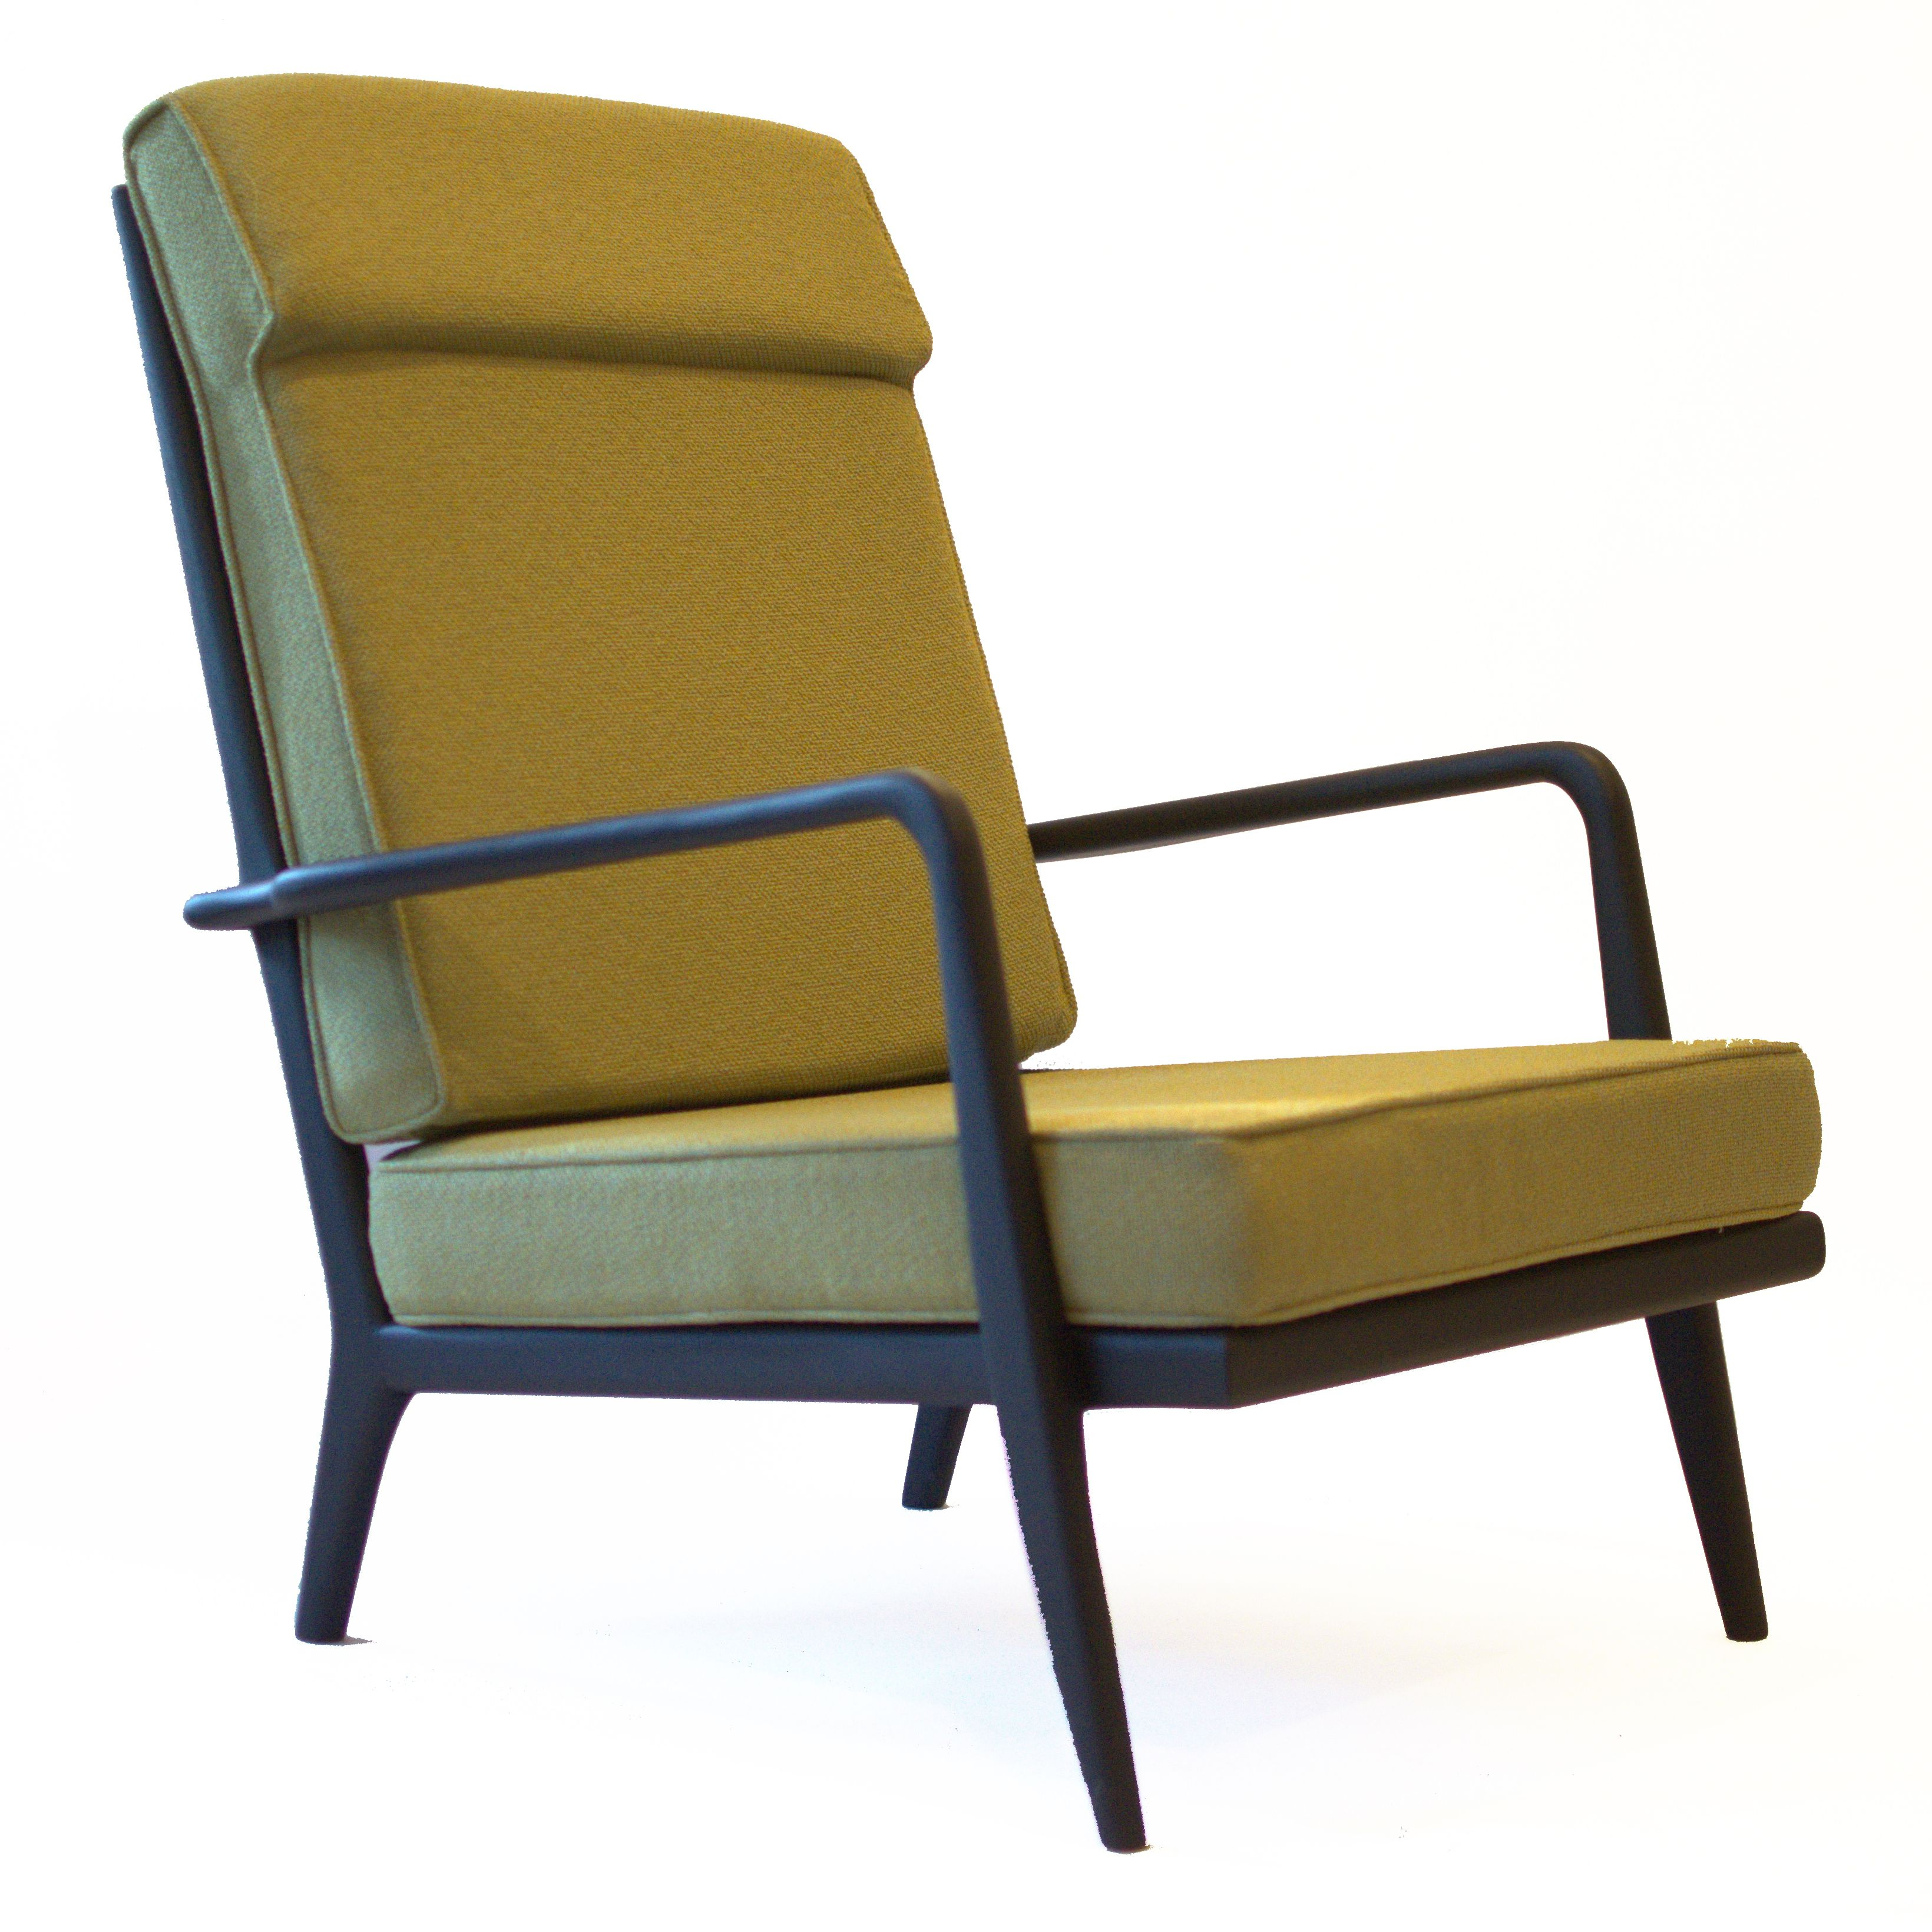 HWAC 44 High Back Arm Chair From The Rail Back Collection